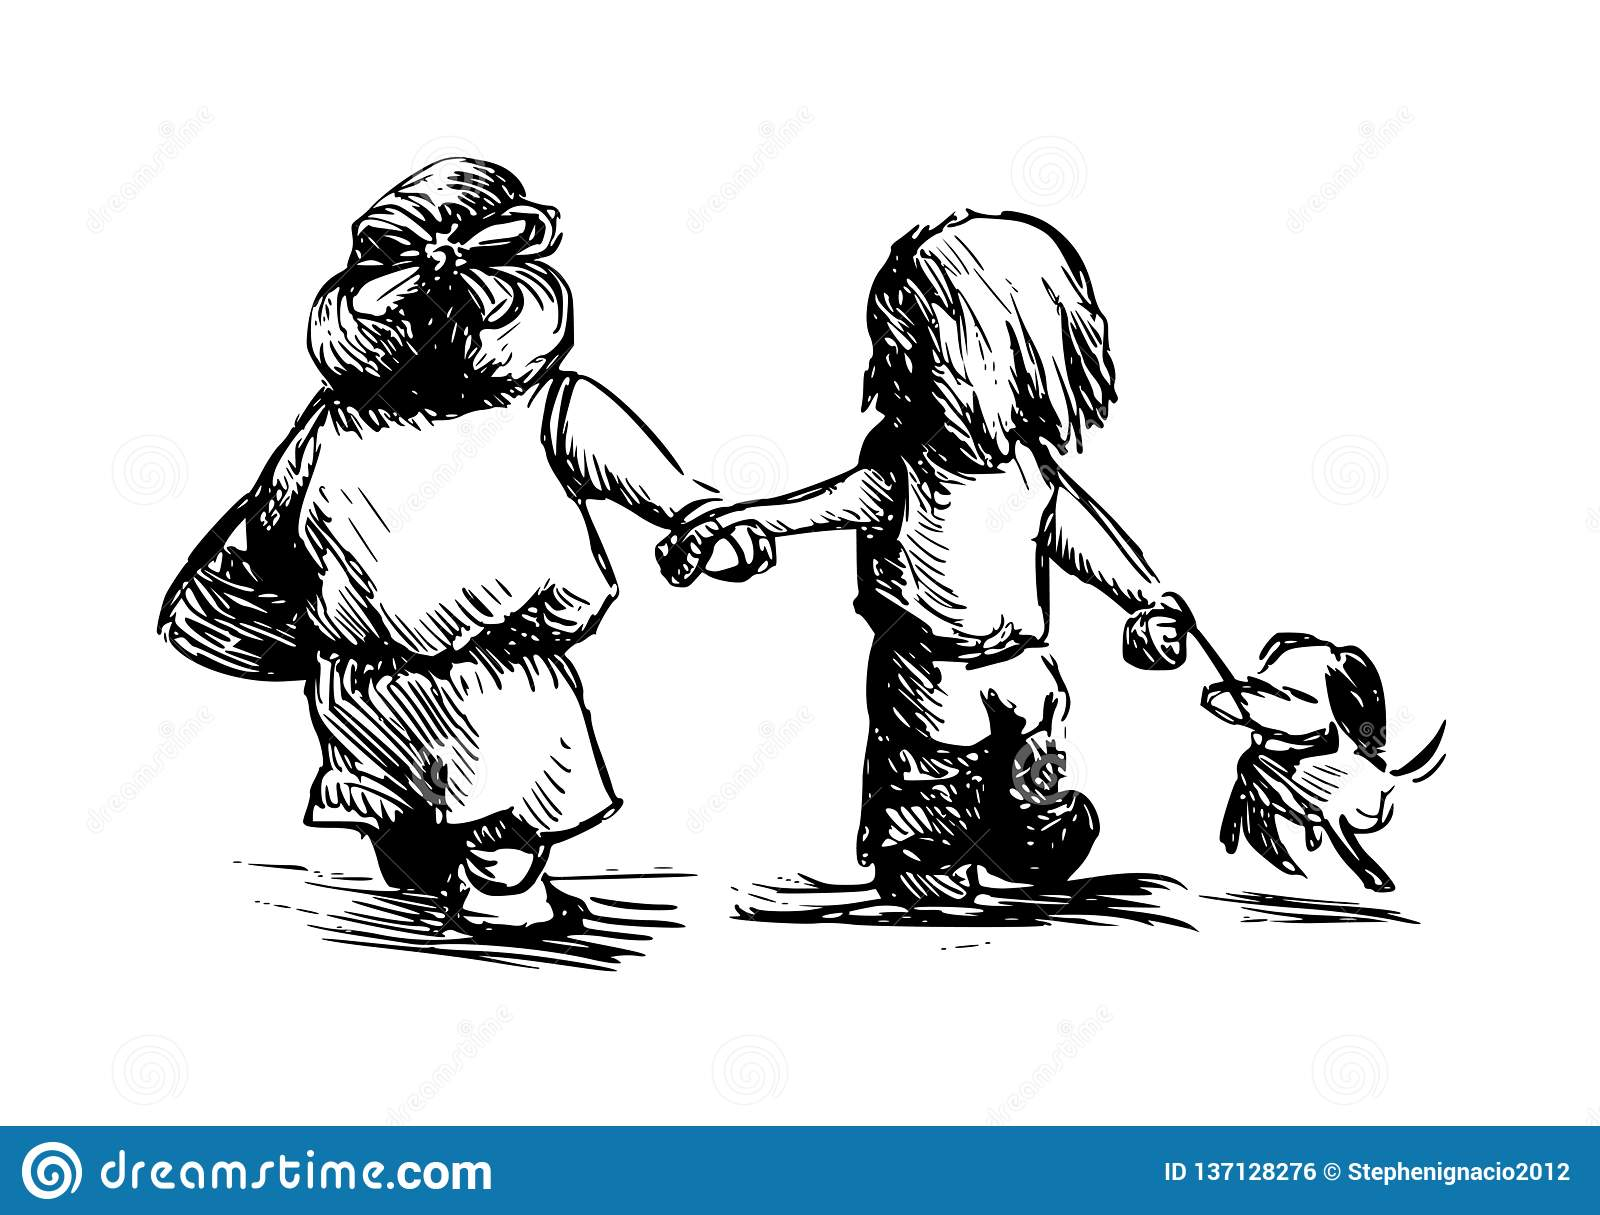 Friends forever stock illustration  Illustration of forever - 137128276